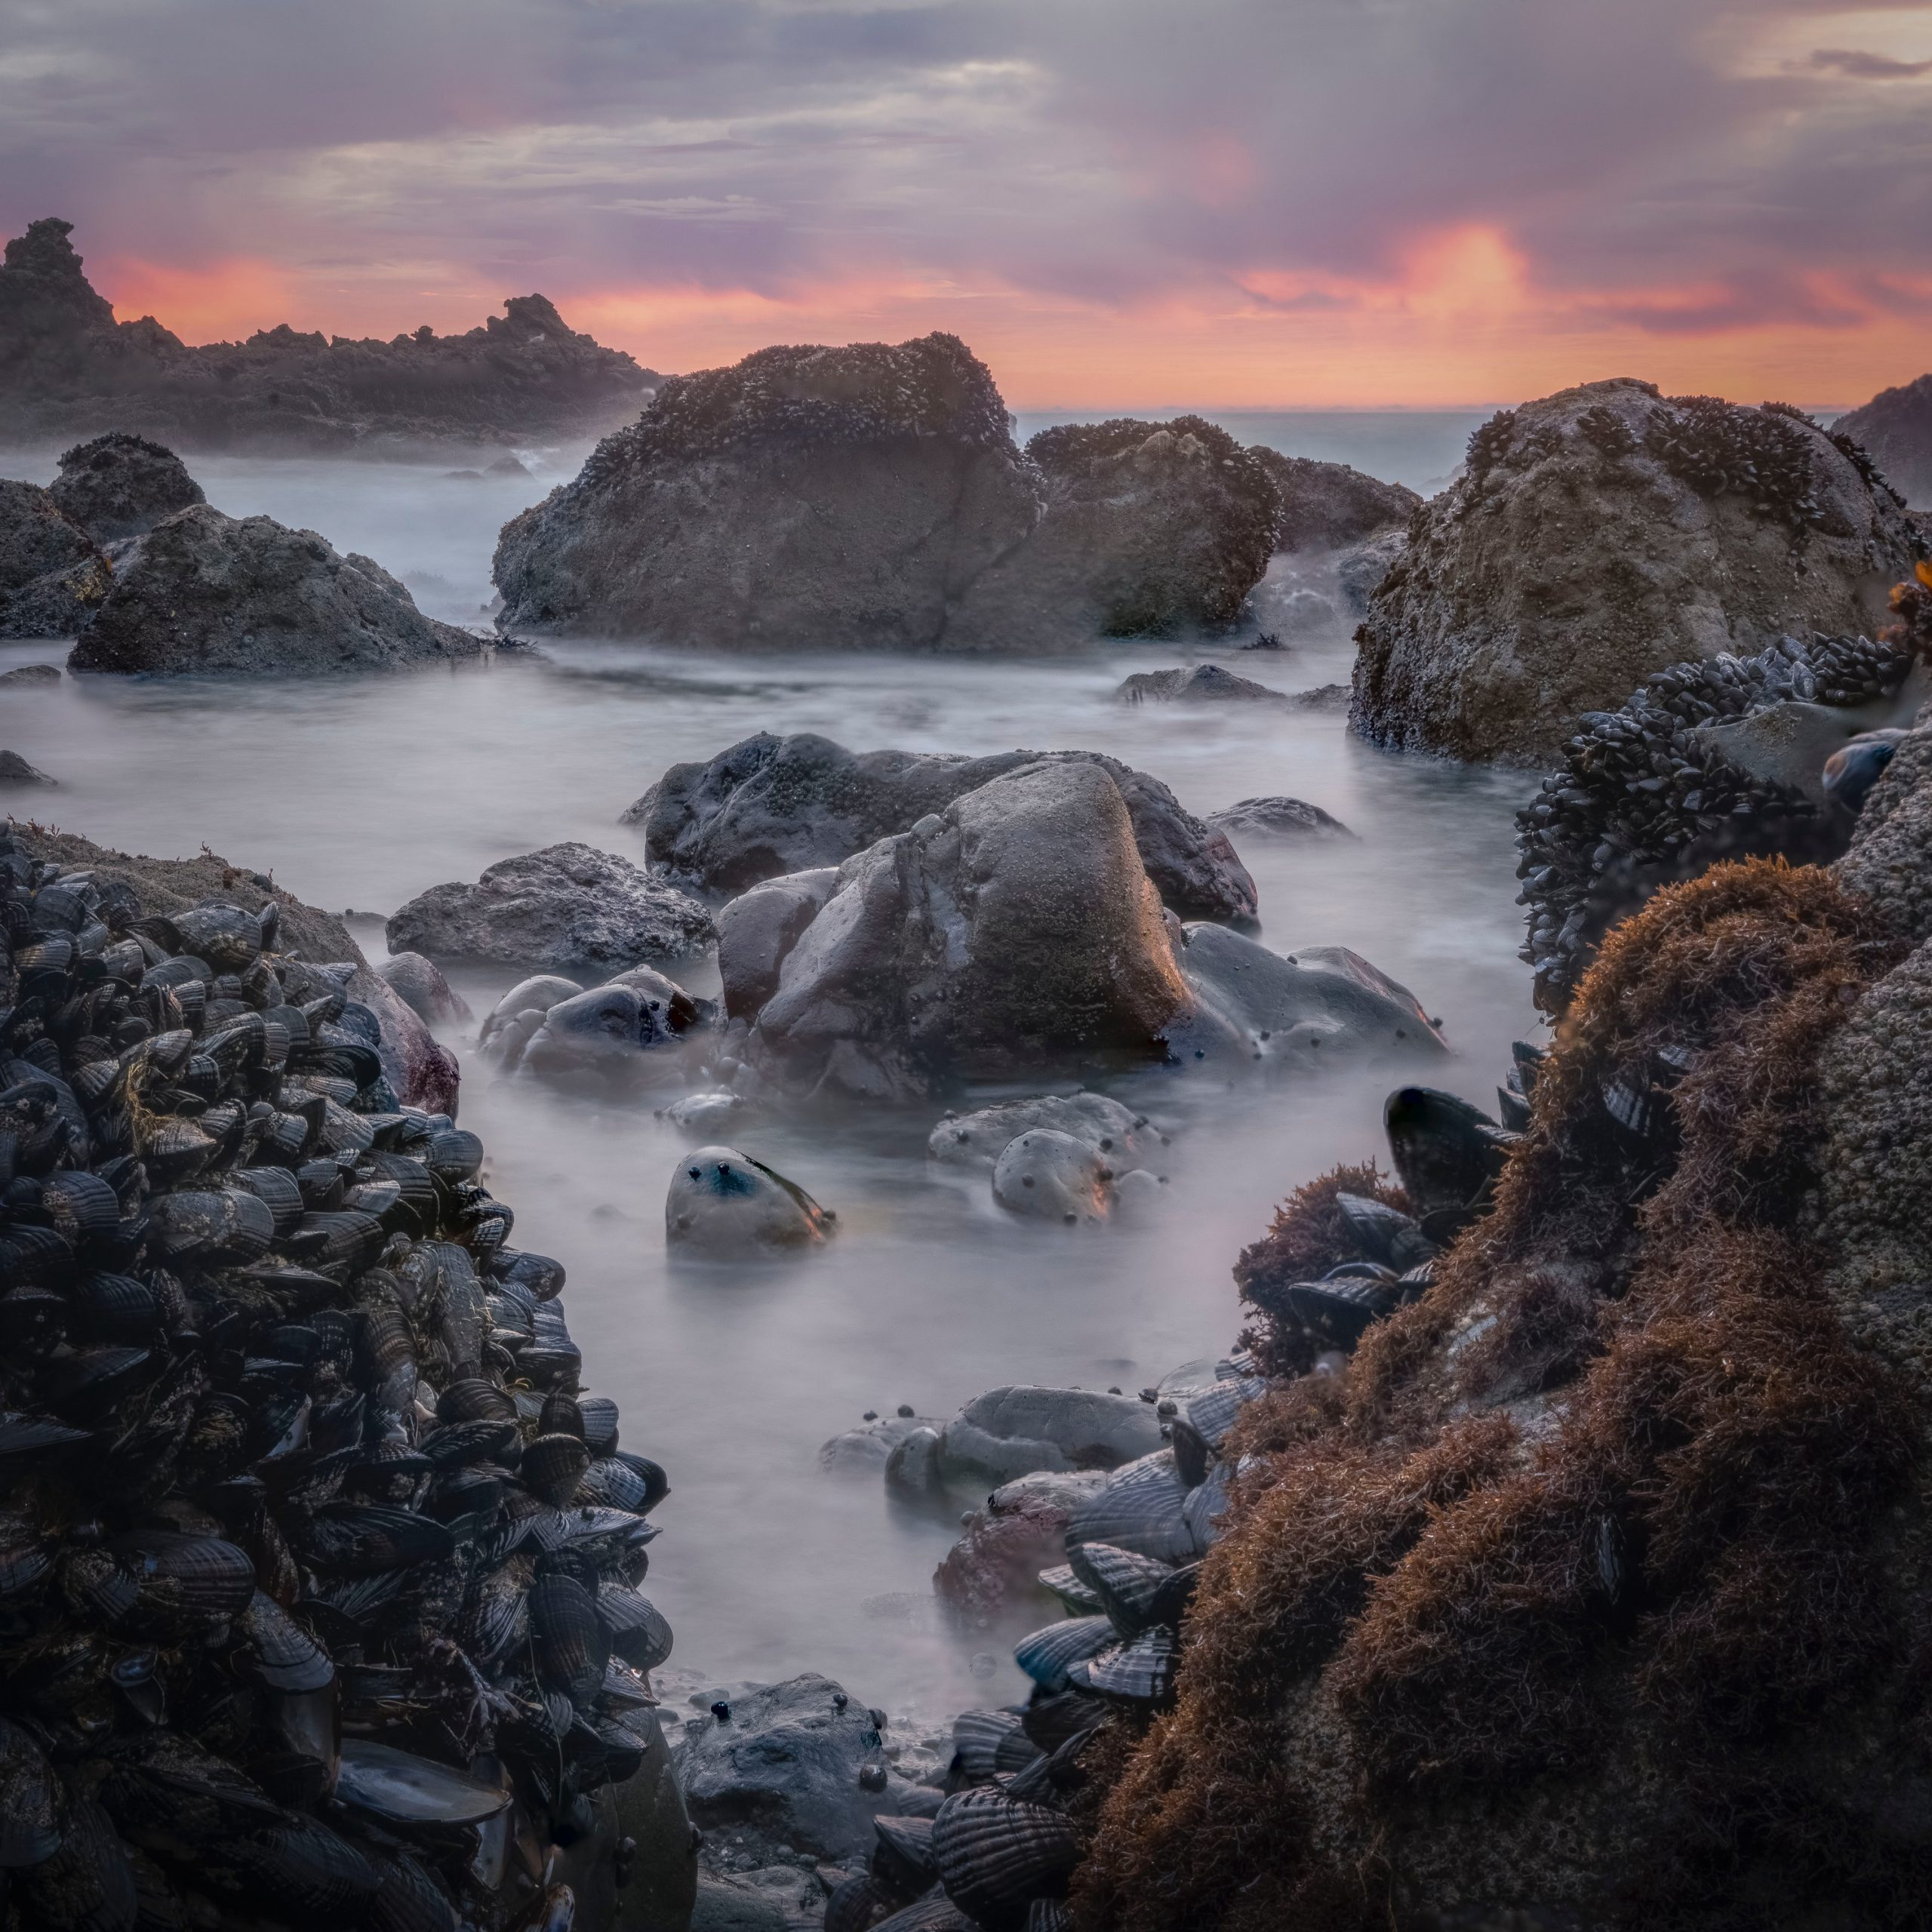 rocky shore with rocks under cloudy sky during daytime